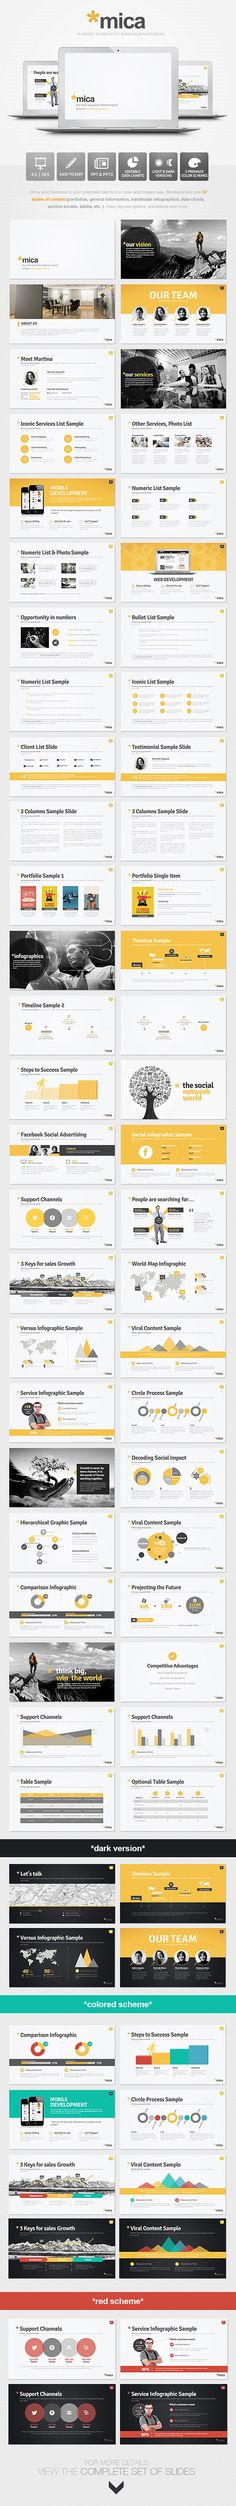 mica powerpoint presentation template powerpoint templates presentation